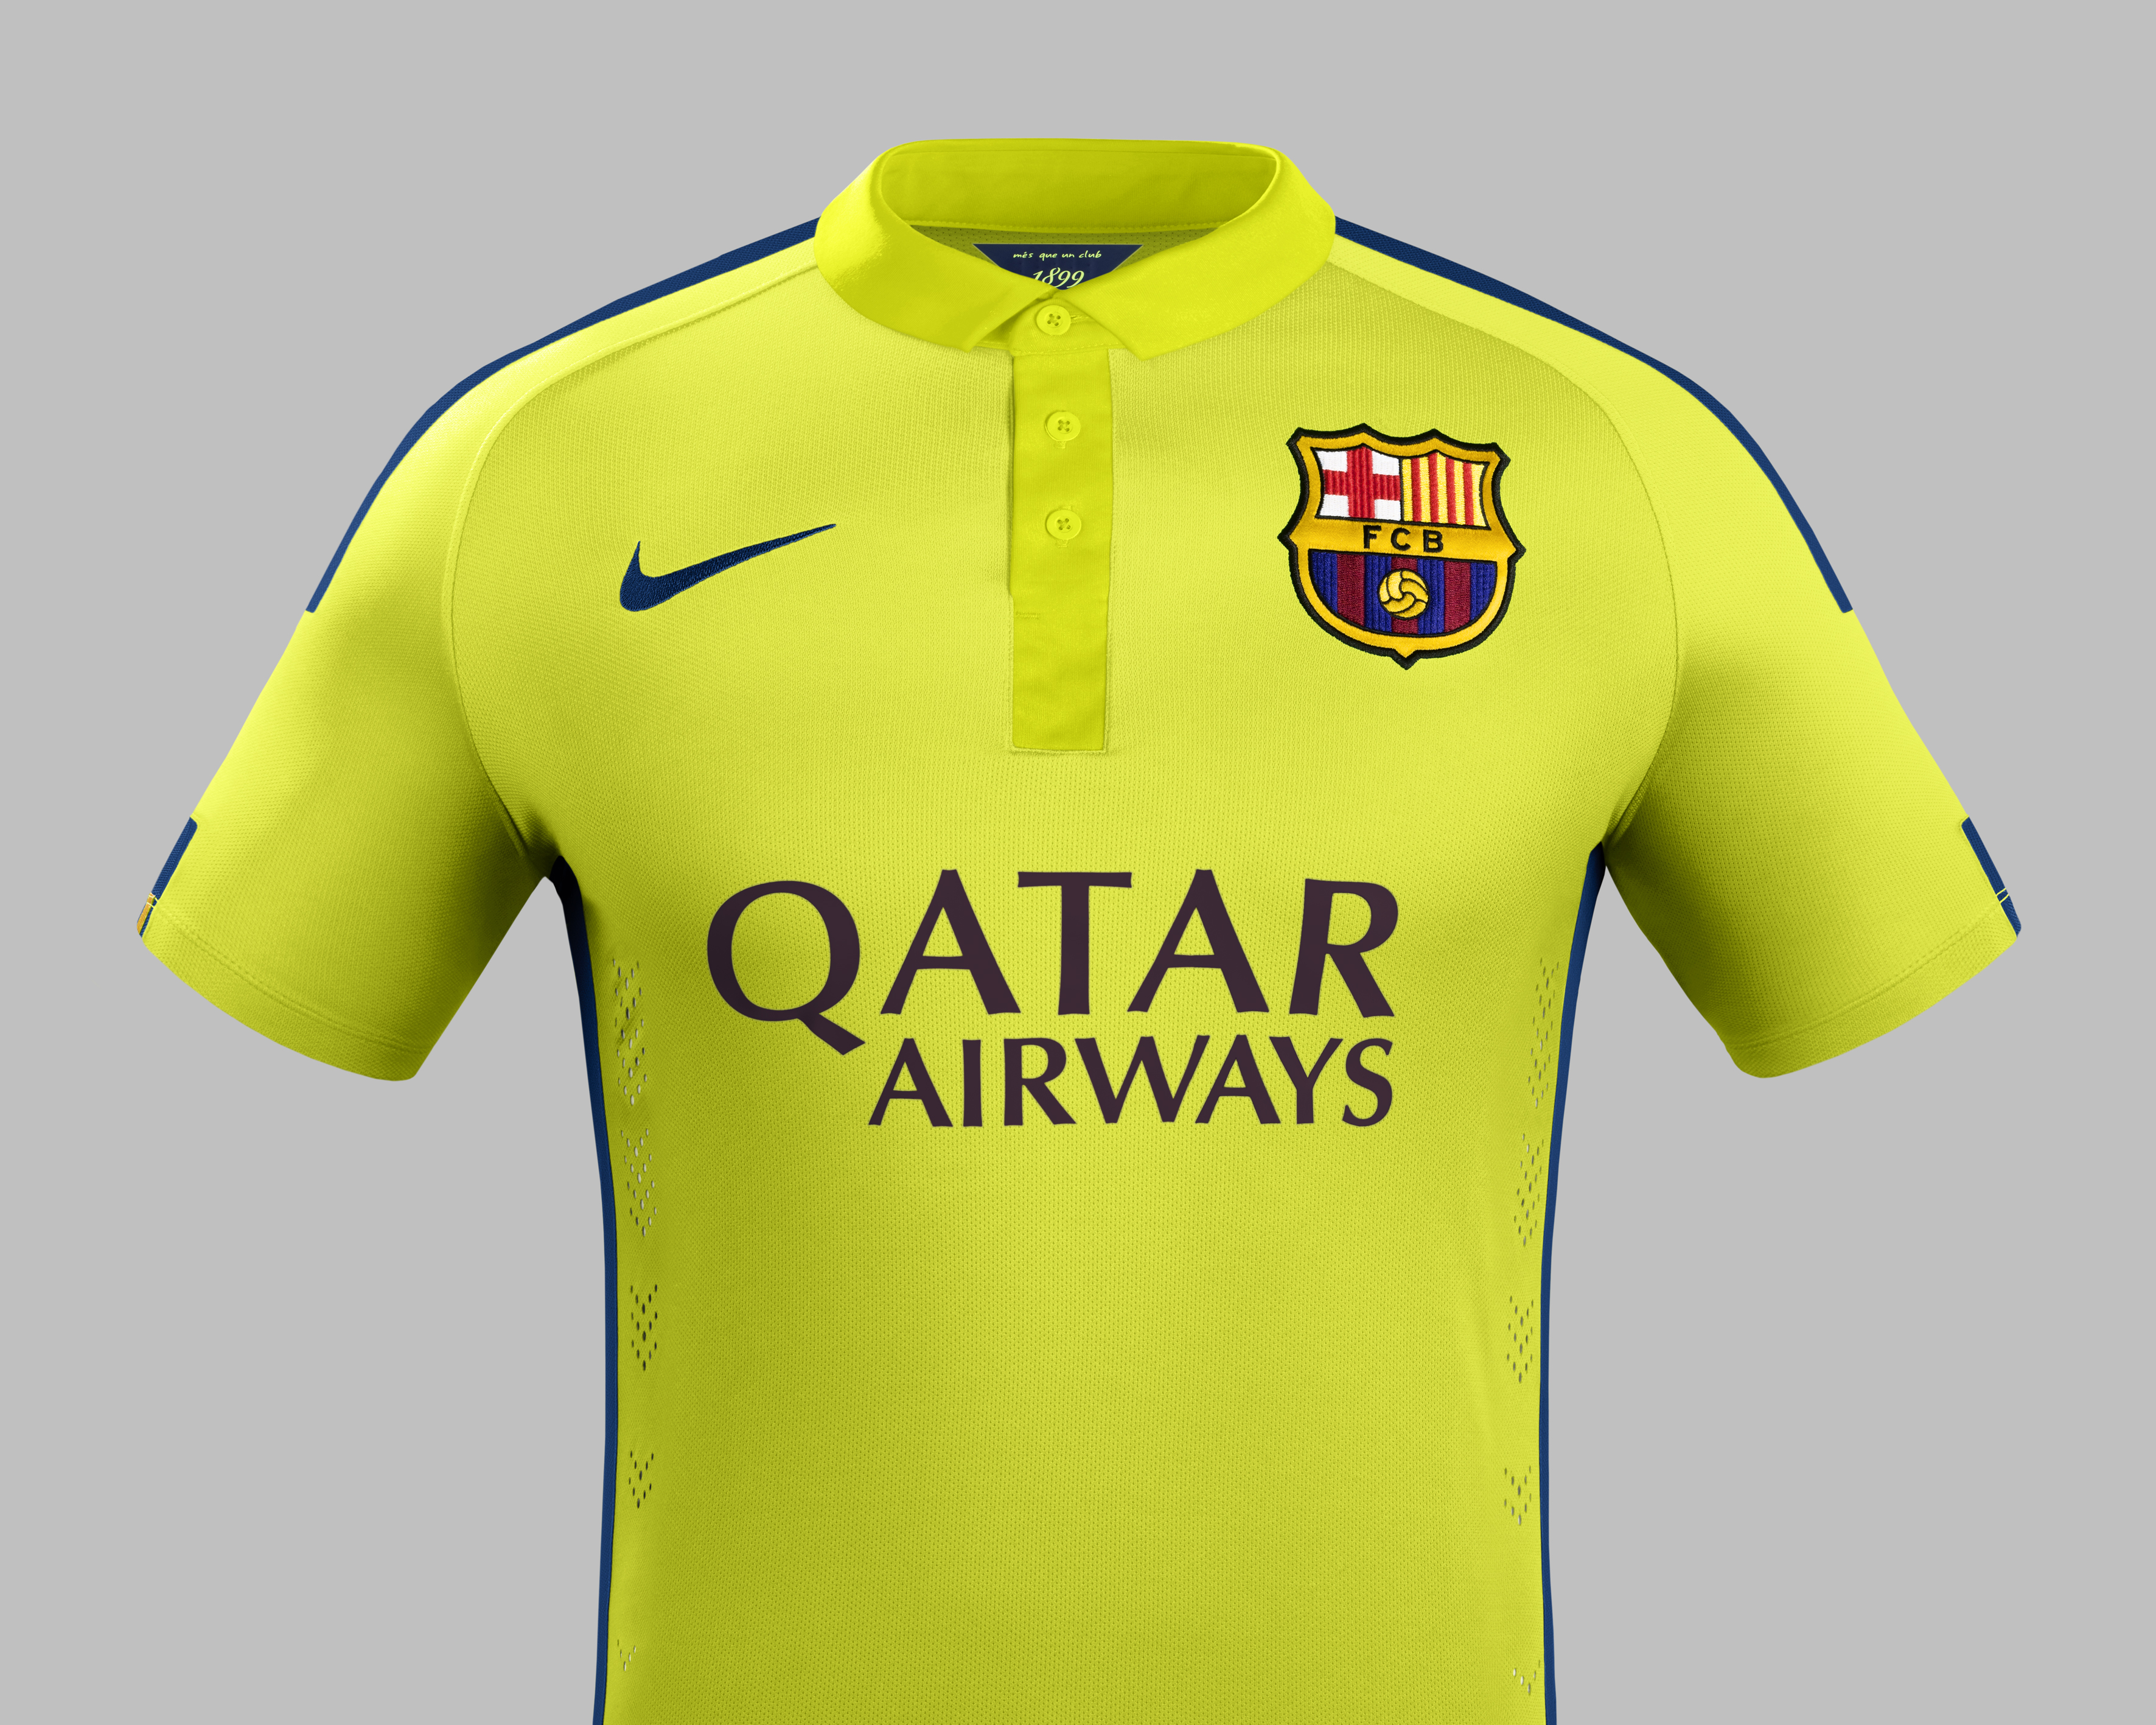 New Fc Barcelona Third Strip Features Two Shades Of Yellow